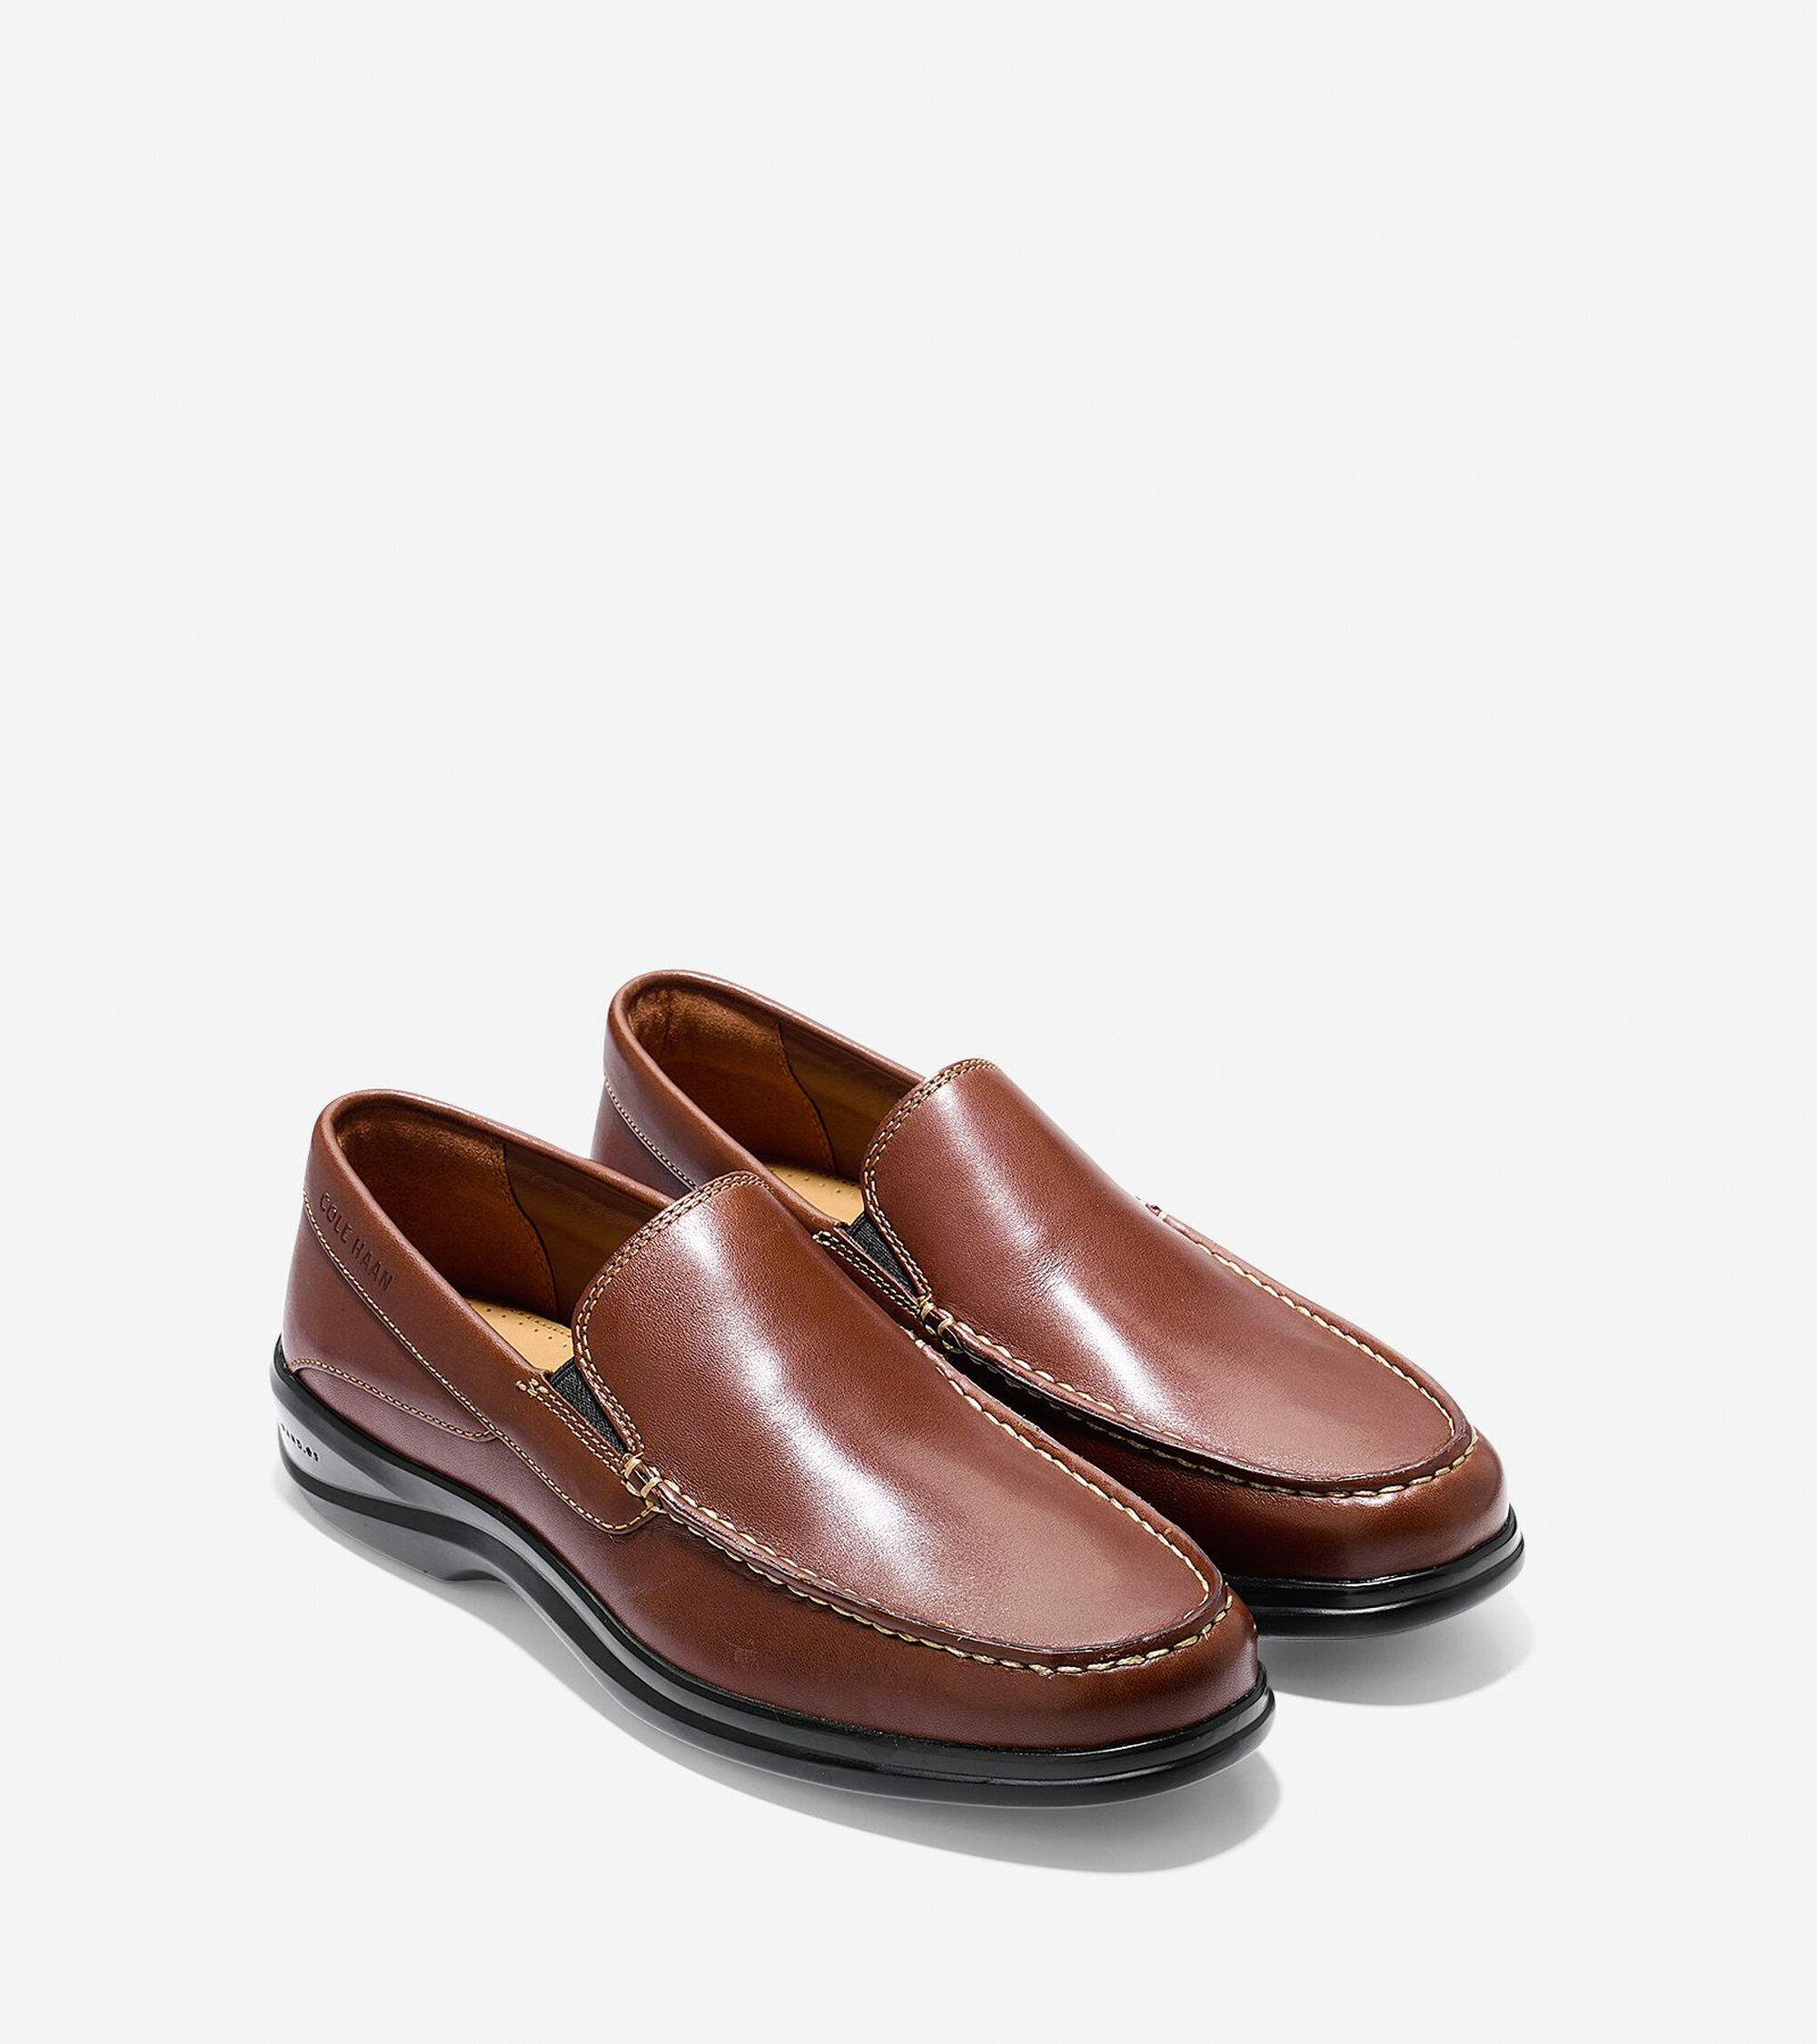 d2a81313d37 ... Santa Barbara Twin Gore Loafer  Santa Barbara Twin Gore Loafer.   COLEHAAN